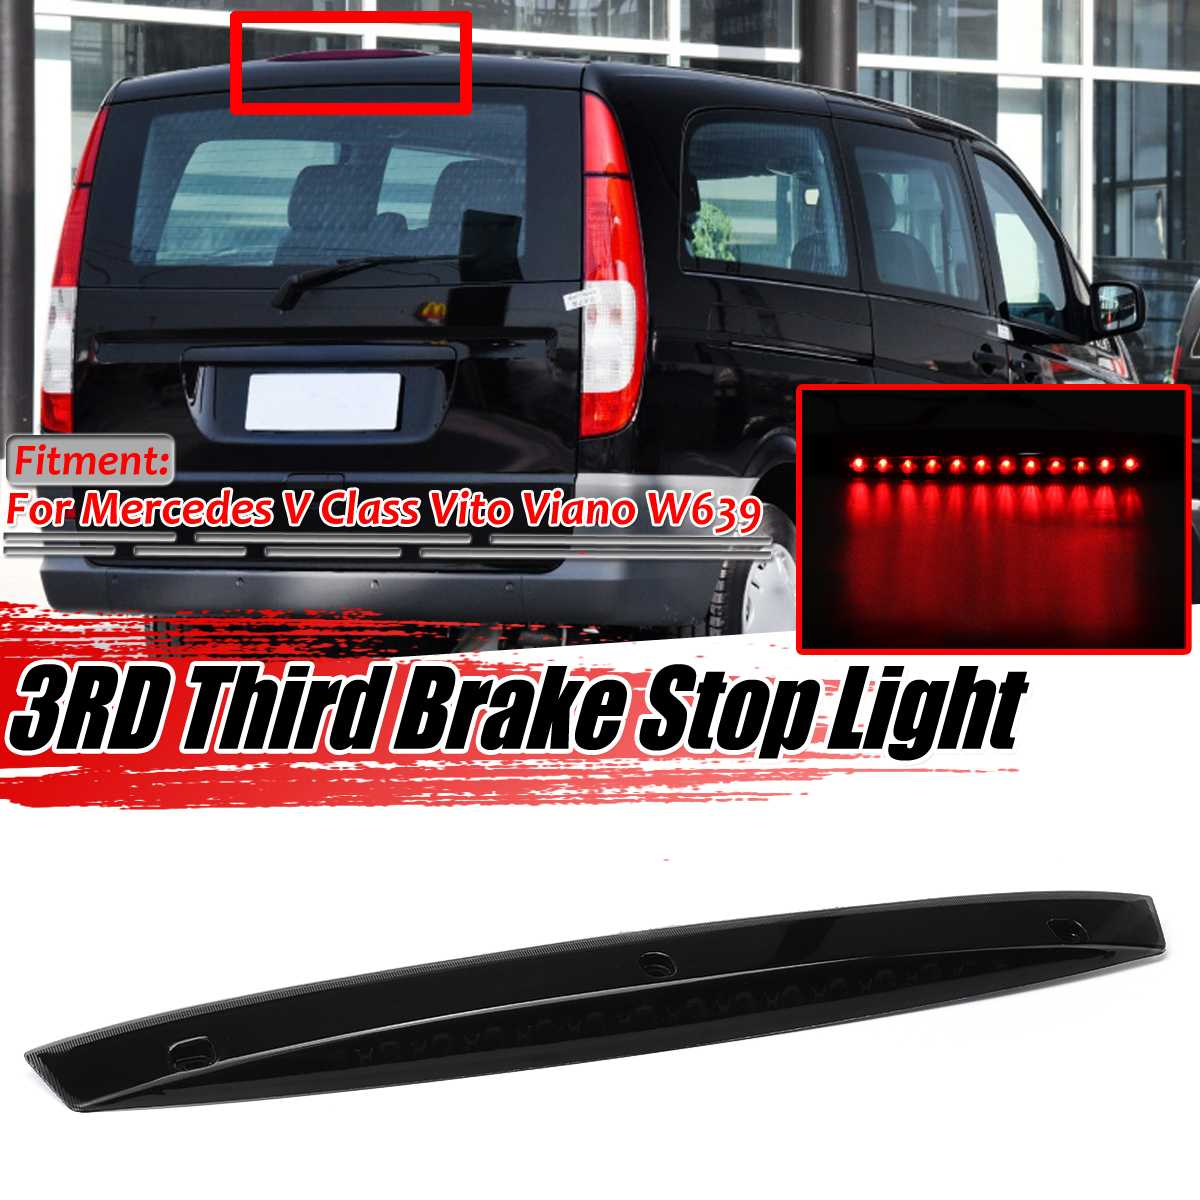 New High Level Smoked W639 Car Rear 3rd Rear Third Brake Light Stop Lamp LED For Mercedes For Benz Vito Viano W639 A6398200056